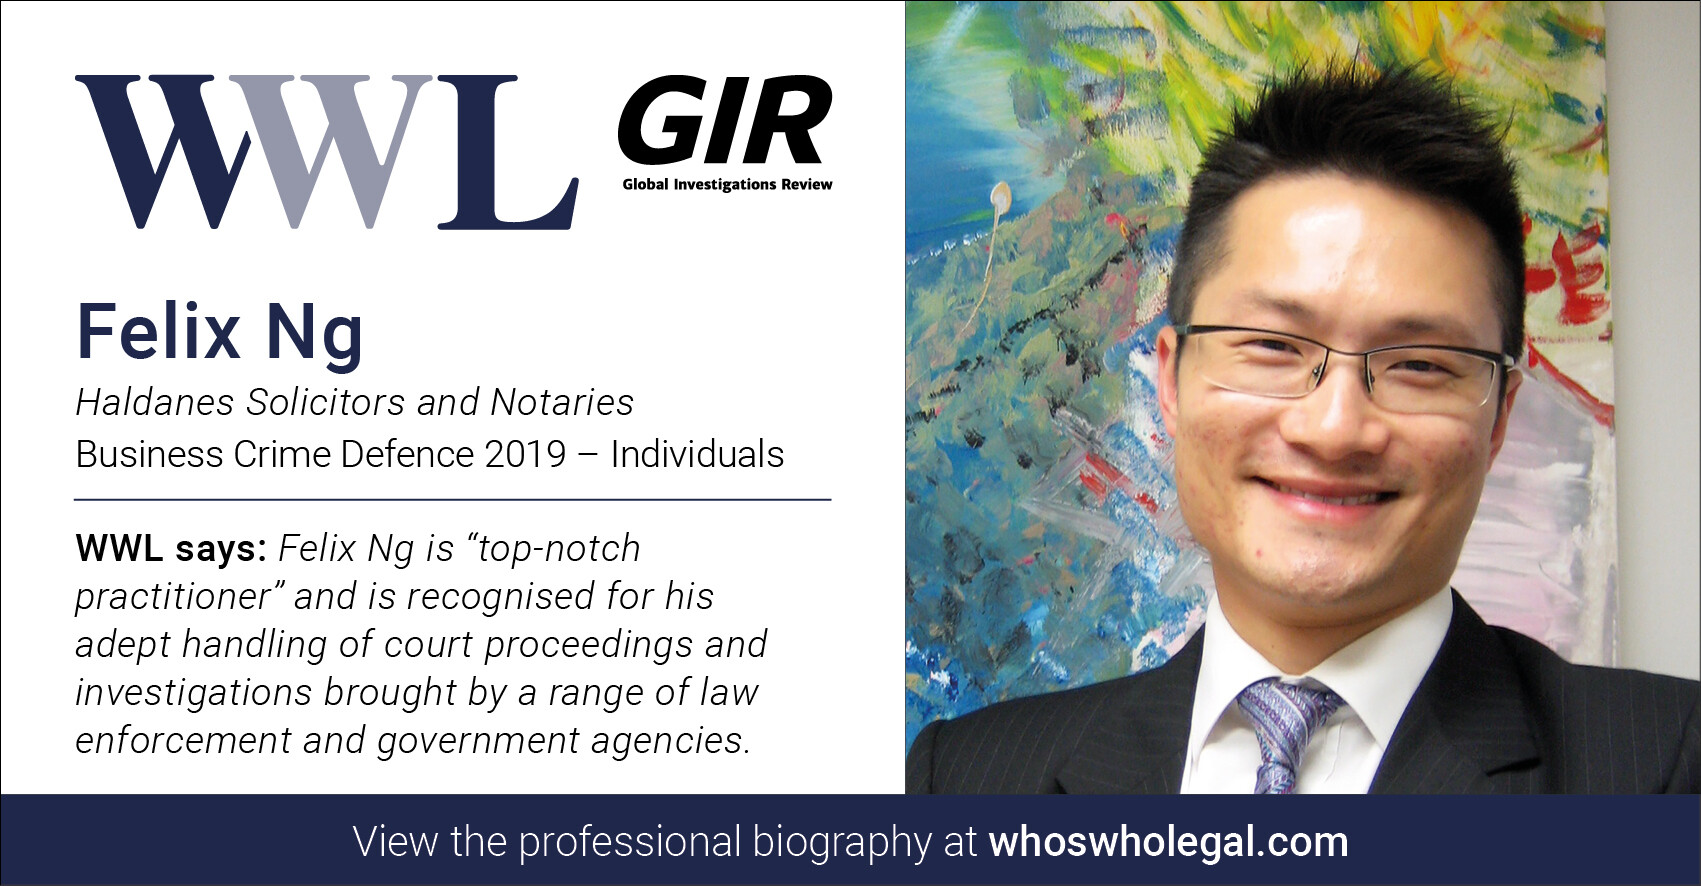 Felix Ng WWL 2019 2 - Haldanes recognised in Who's Who Legal Business Crime Defence 2019